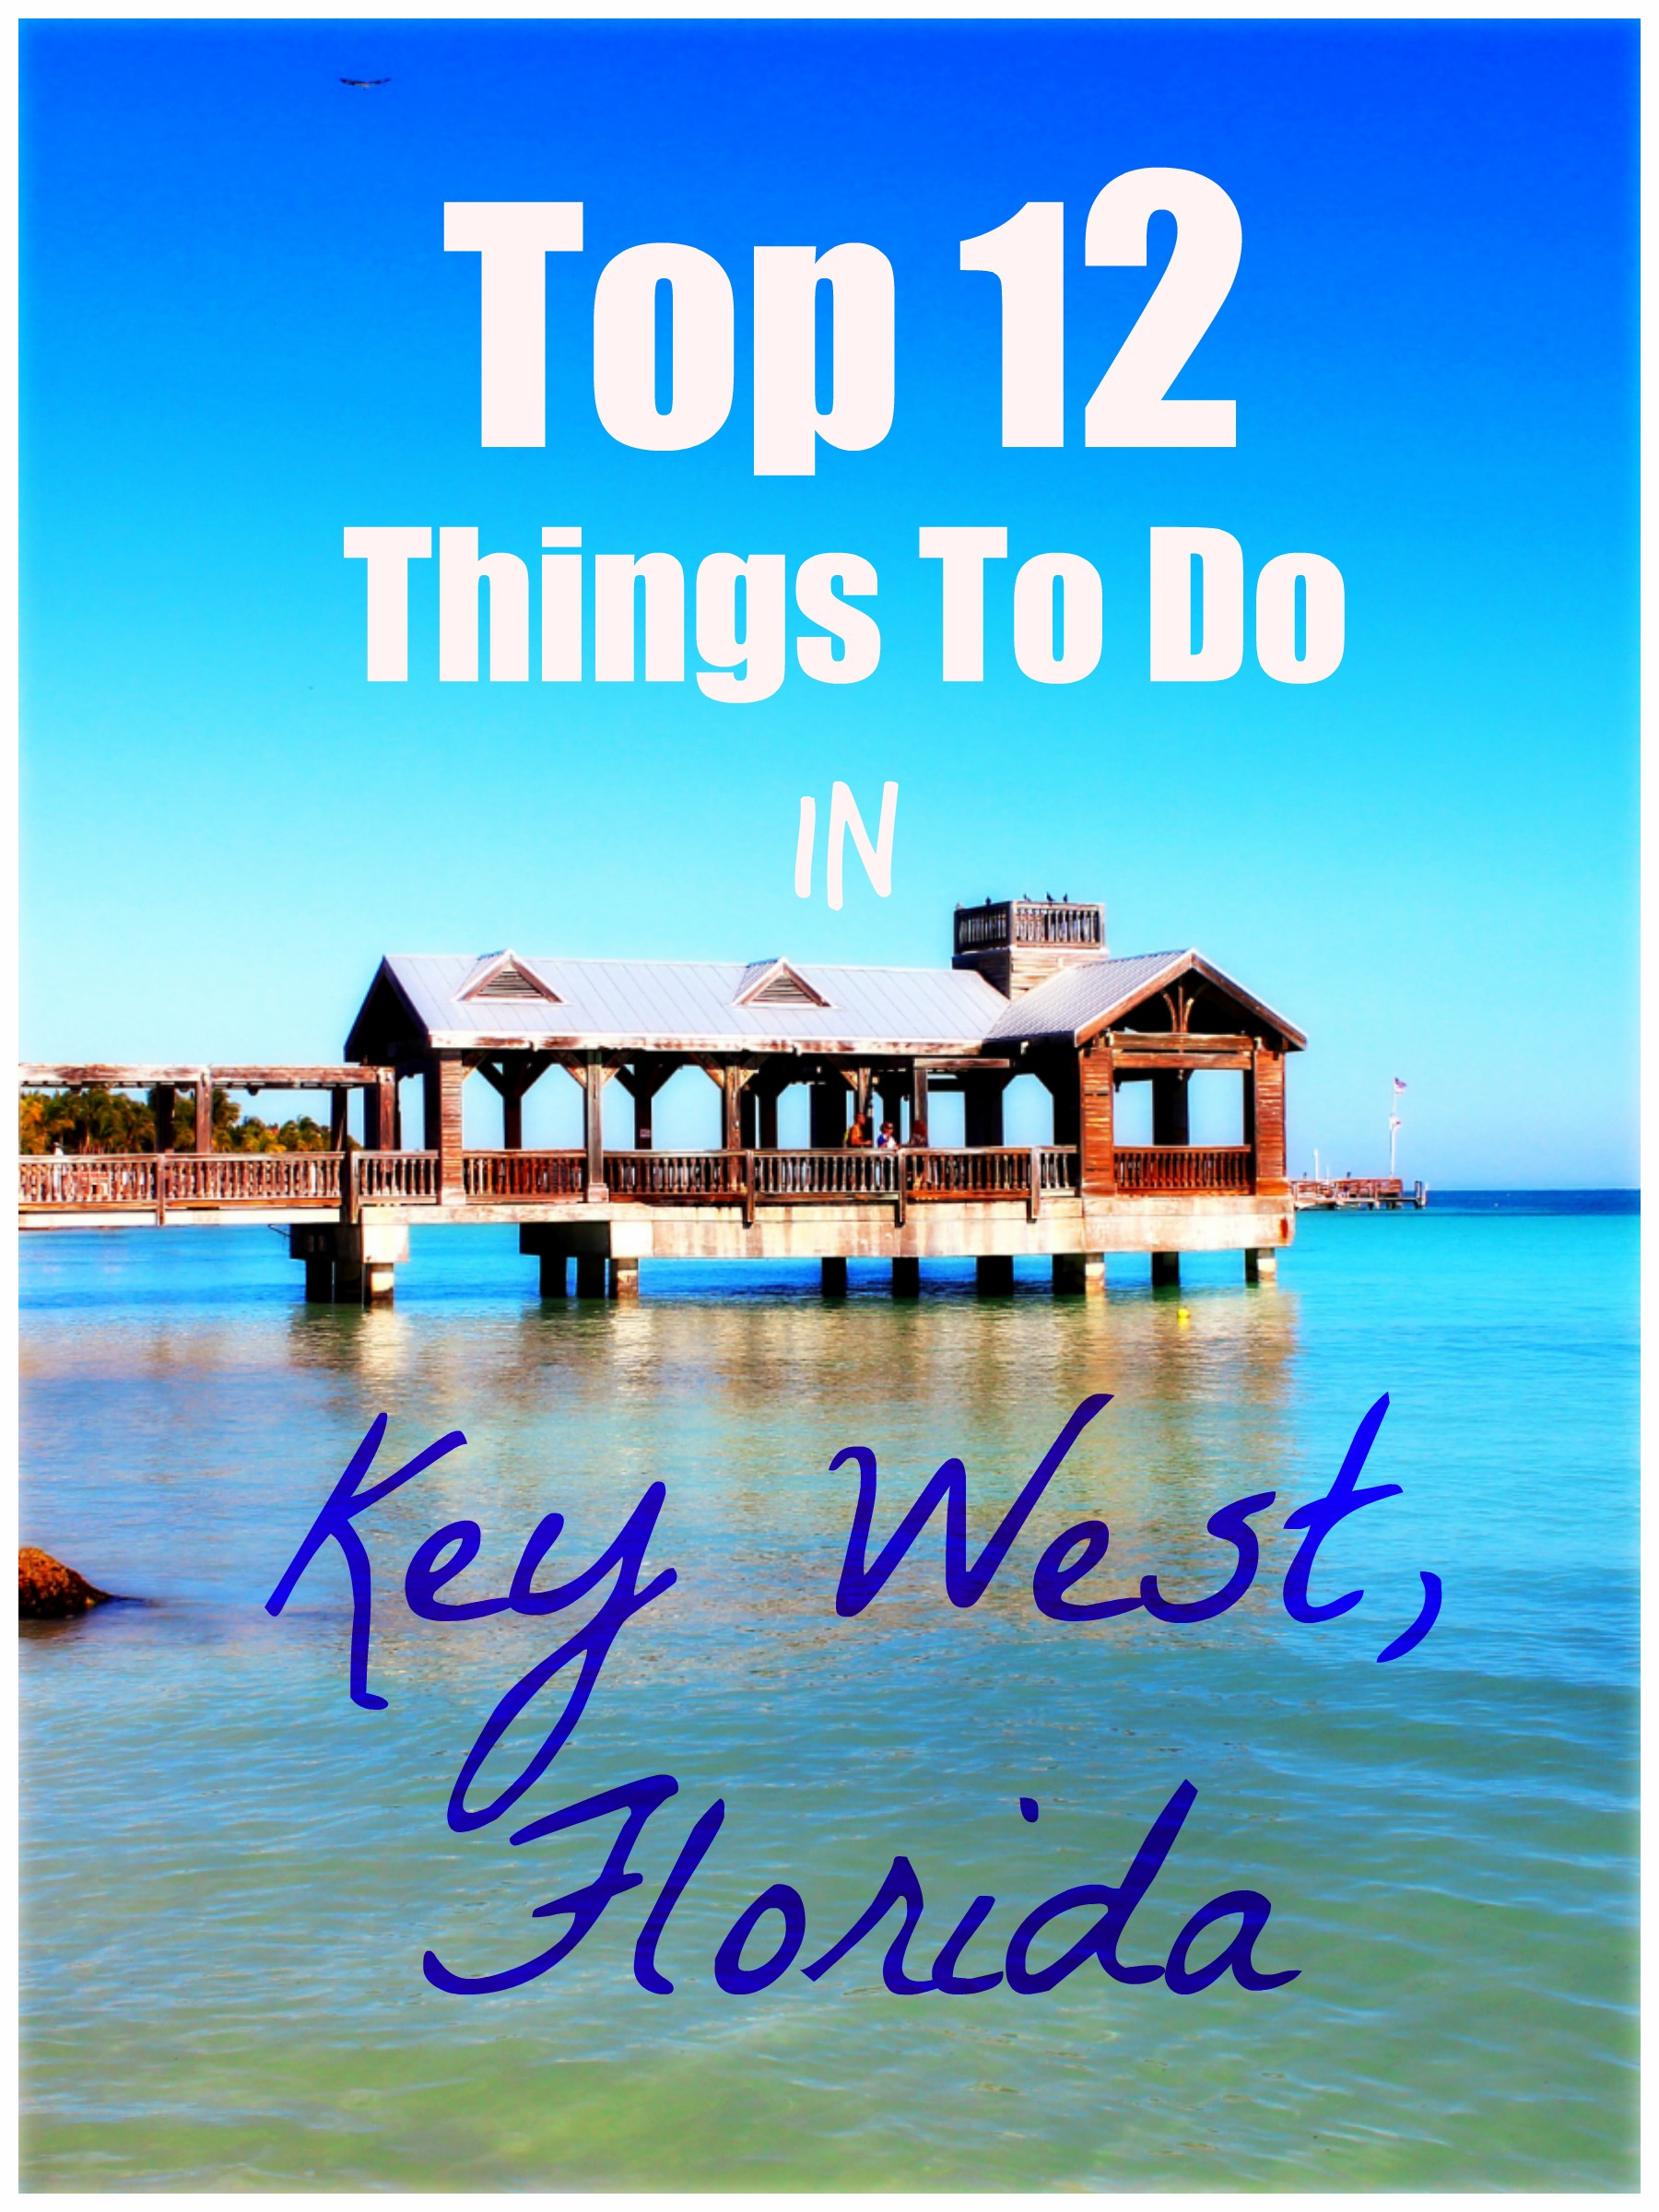 Top 12 things to do in key west florida for Cheap vacations in january